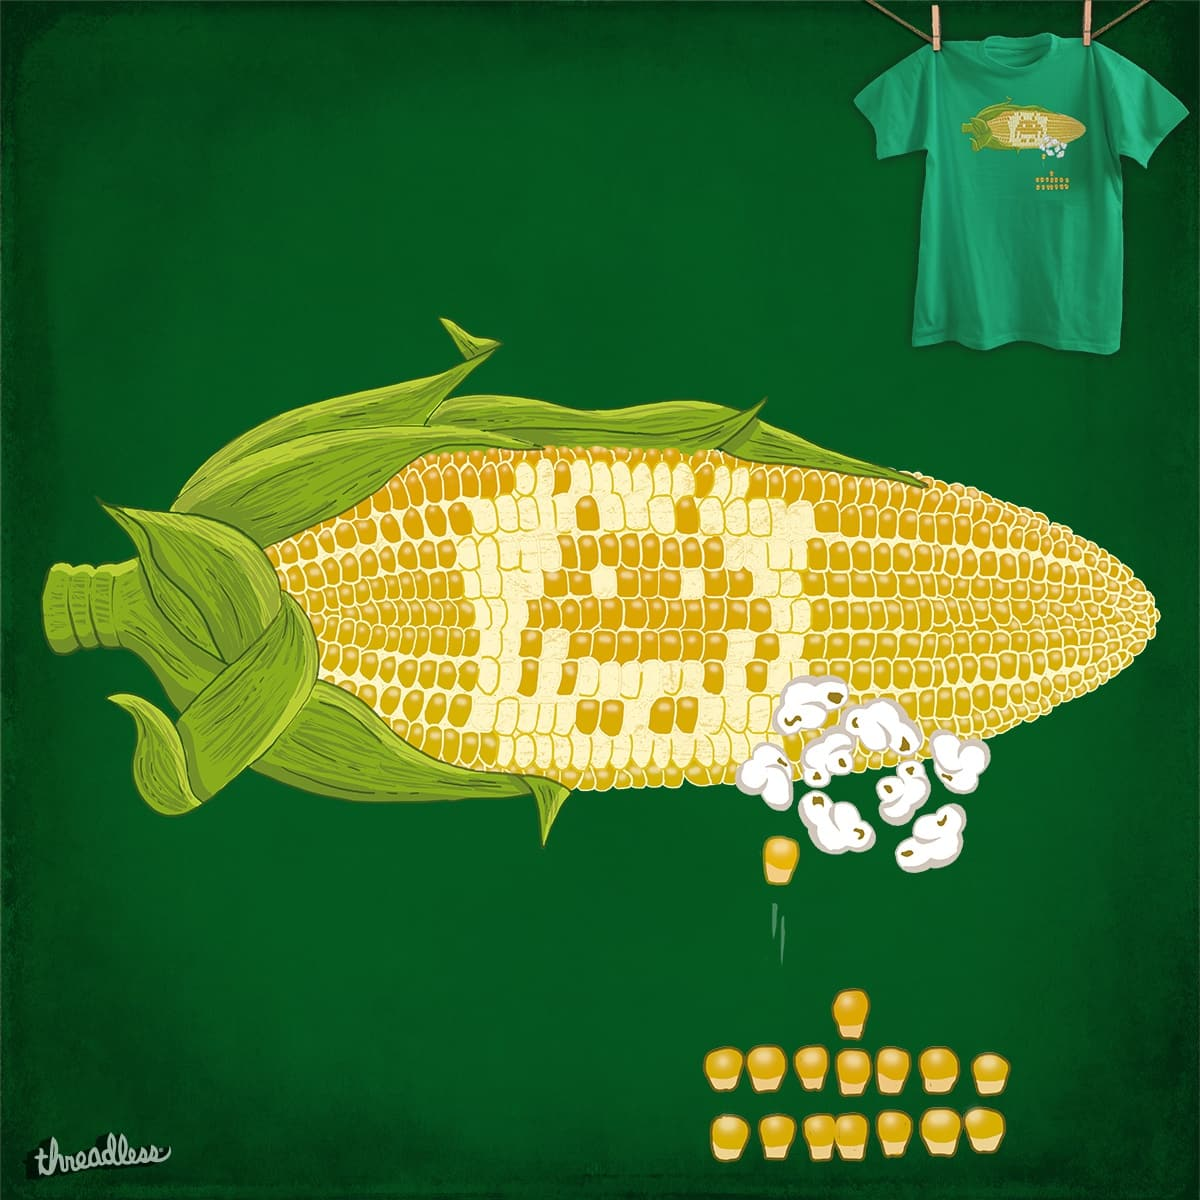 Corn Invander by Eddy_cz on Threadless